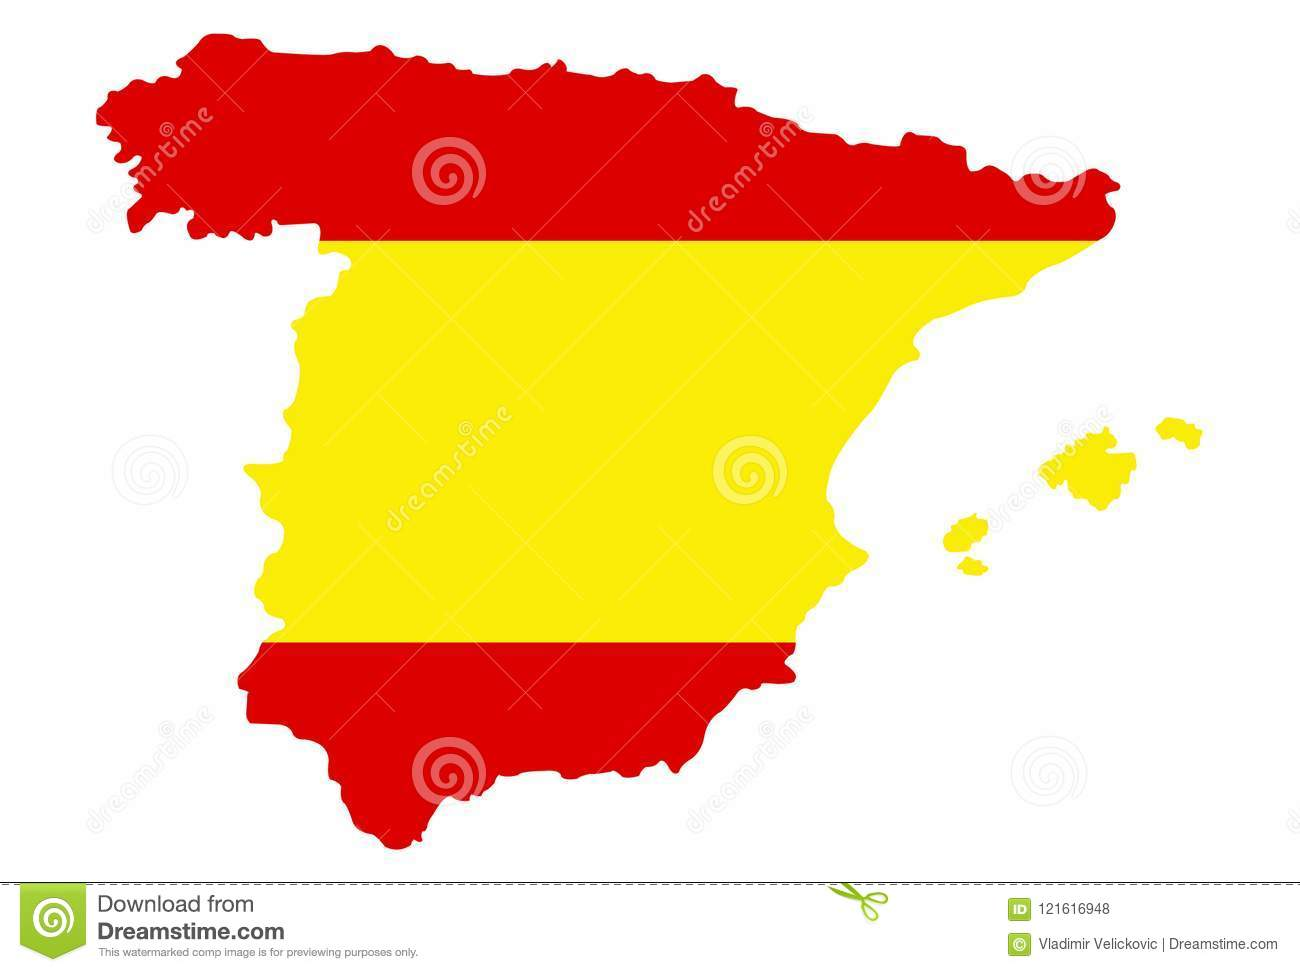 Picture of: Spain Map And Flag Sovereign State On The Iberian Peninsula In Europe Stock Vector Illustration Of Region Flag 121616948